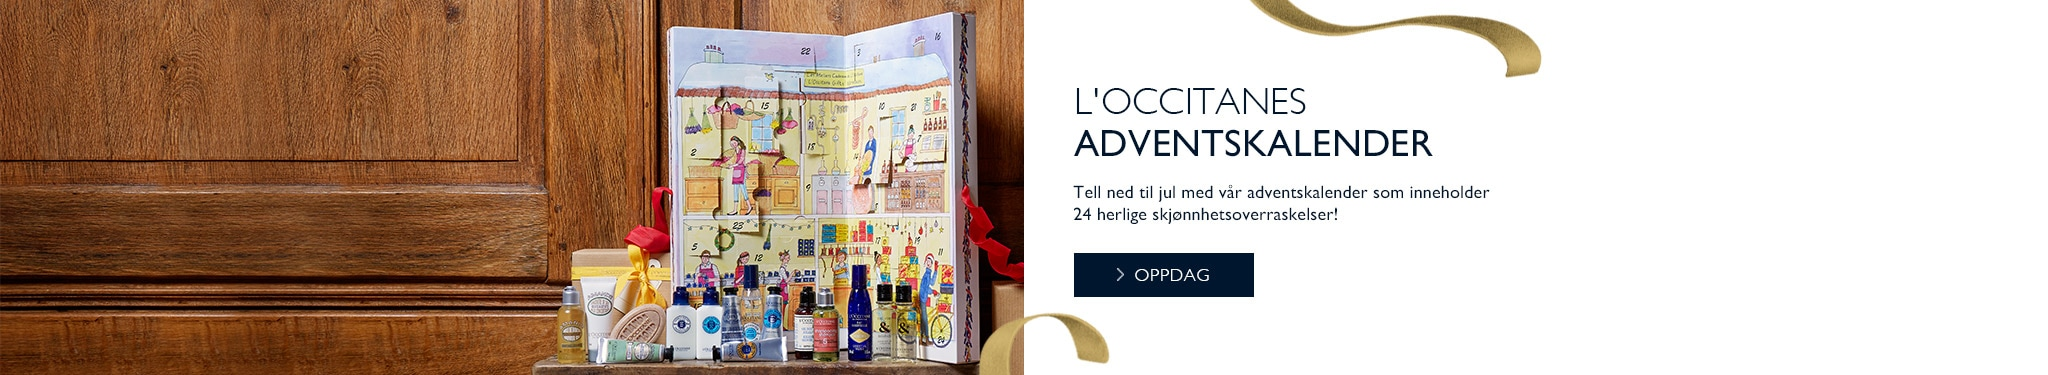 L'OCCITANES ADVENTSKALENDER